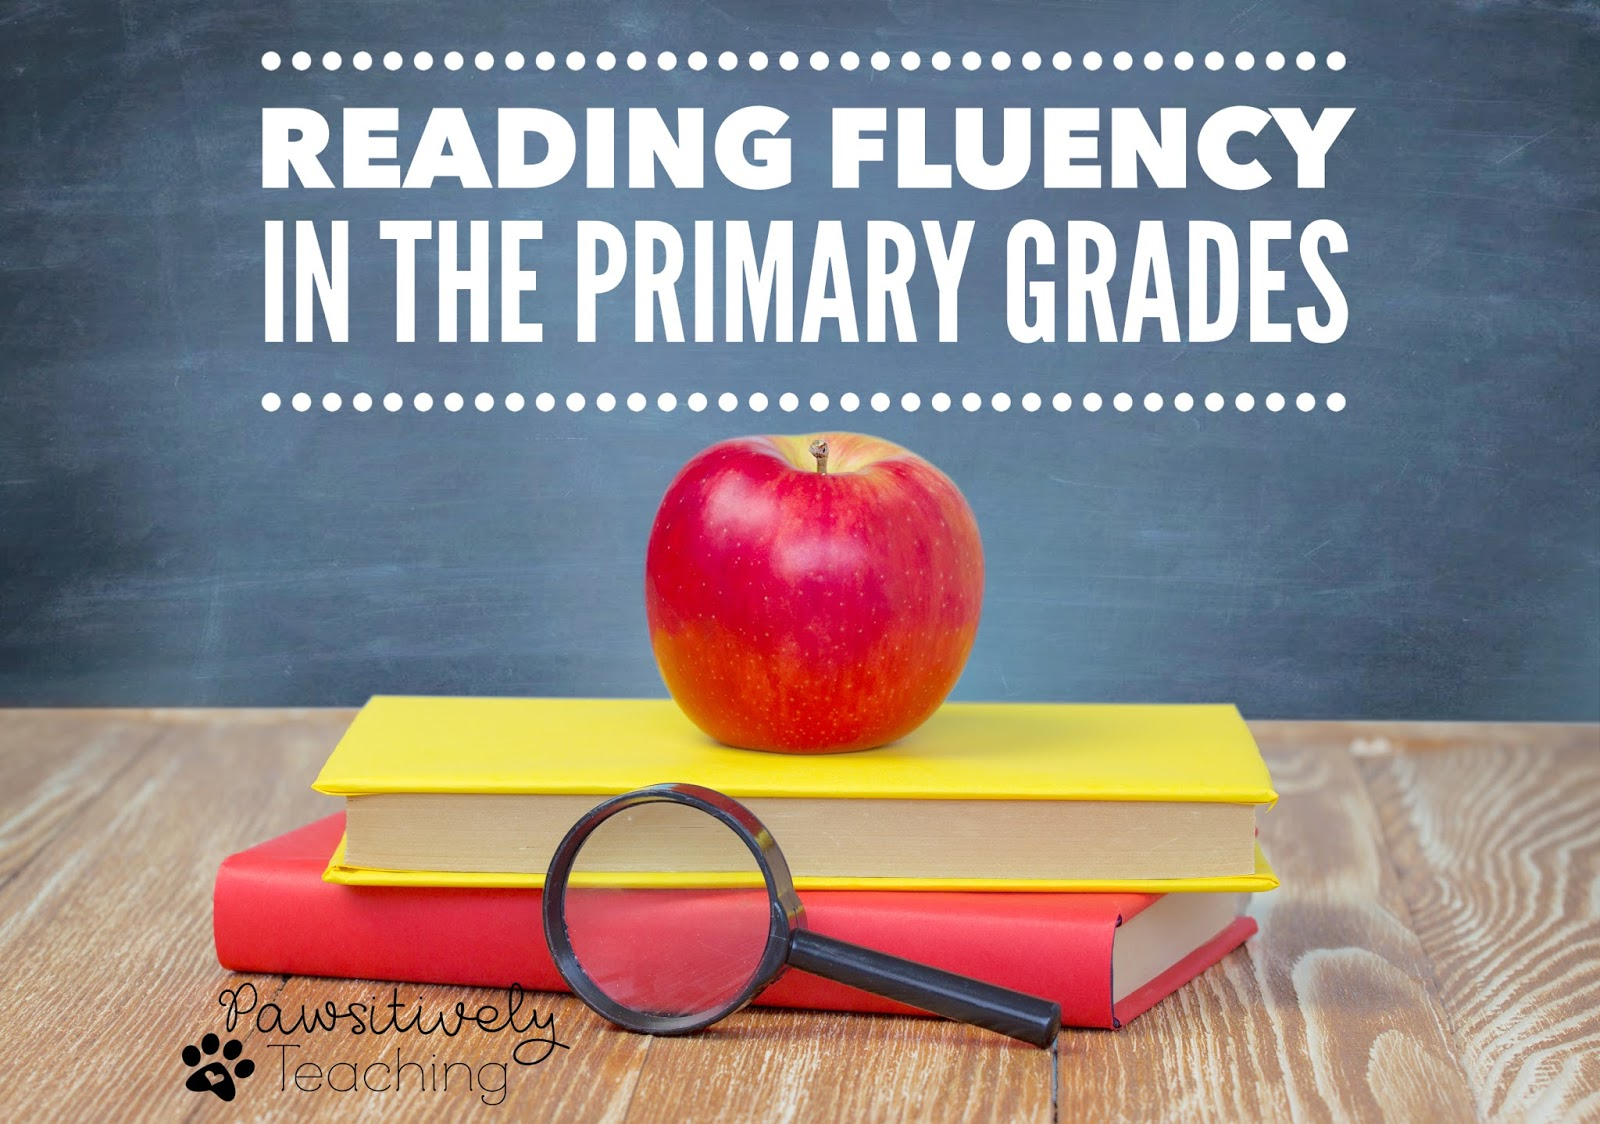 Why is Reading Fluency So Important in the Primary Grades?